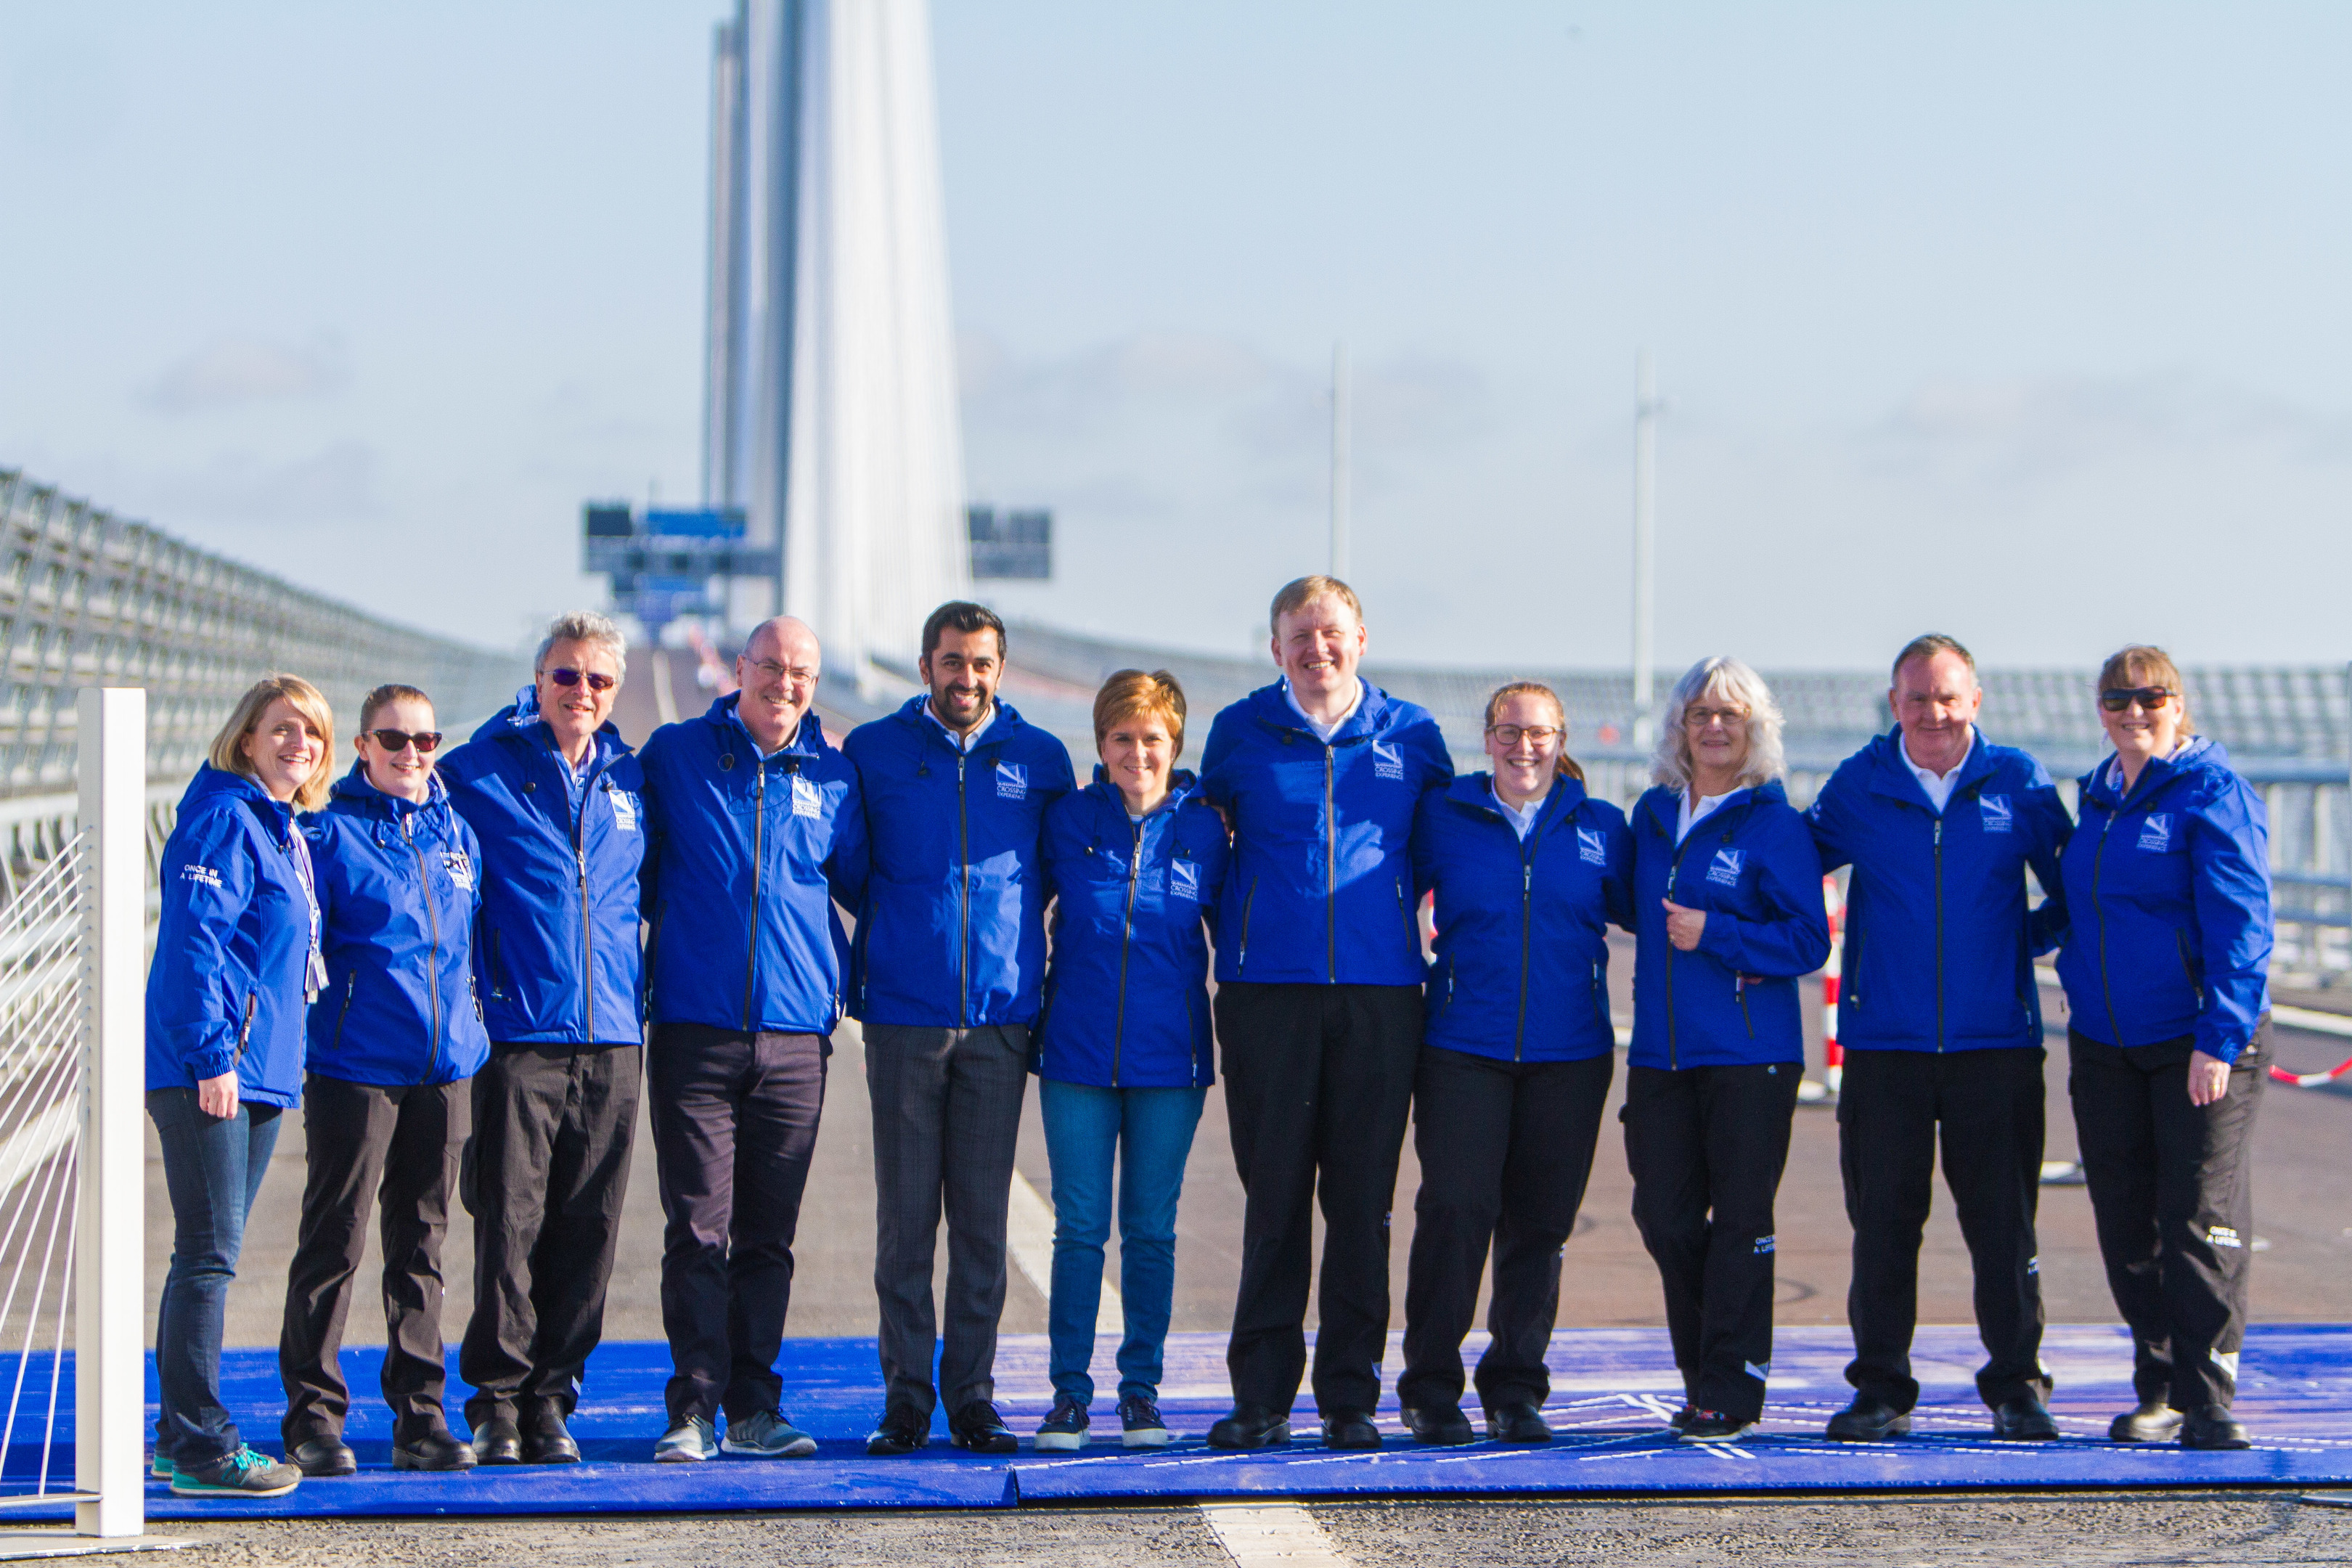 First Minister Nicola Sturgeon and Transport Minister Humza Yousaf were among the first onto the bridge